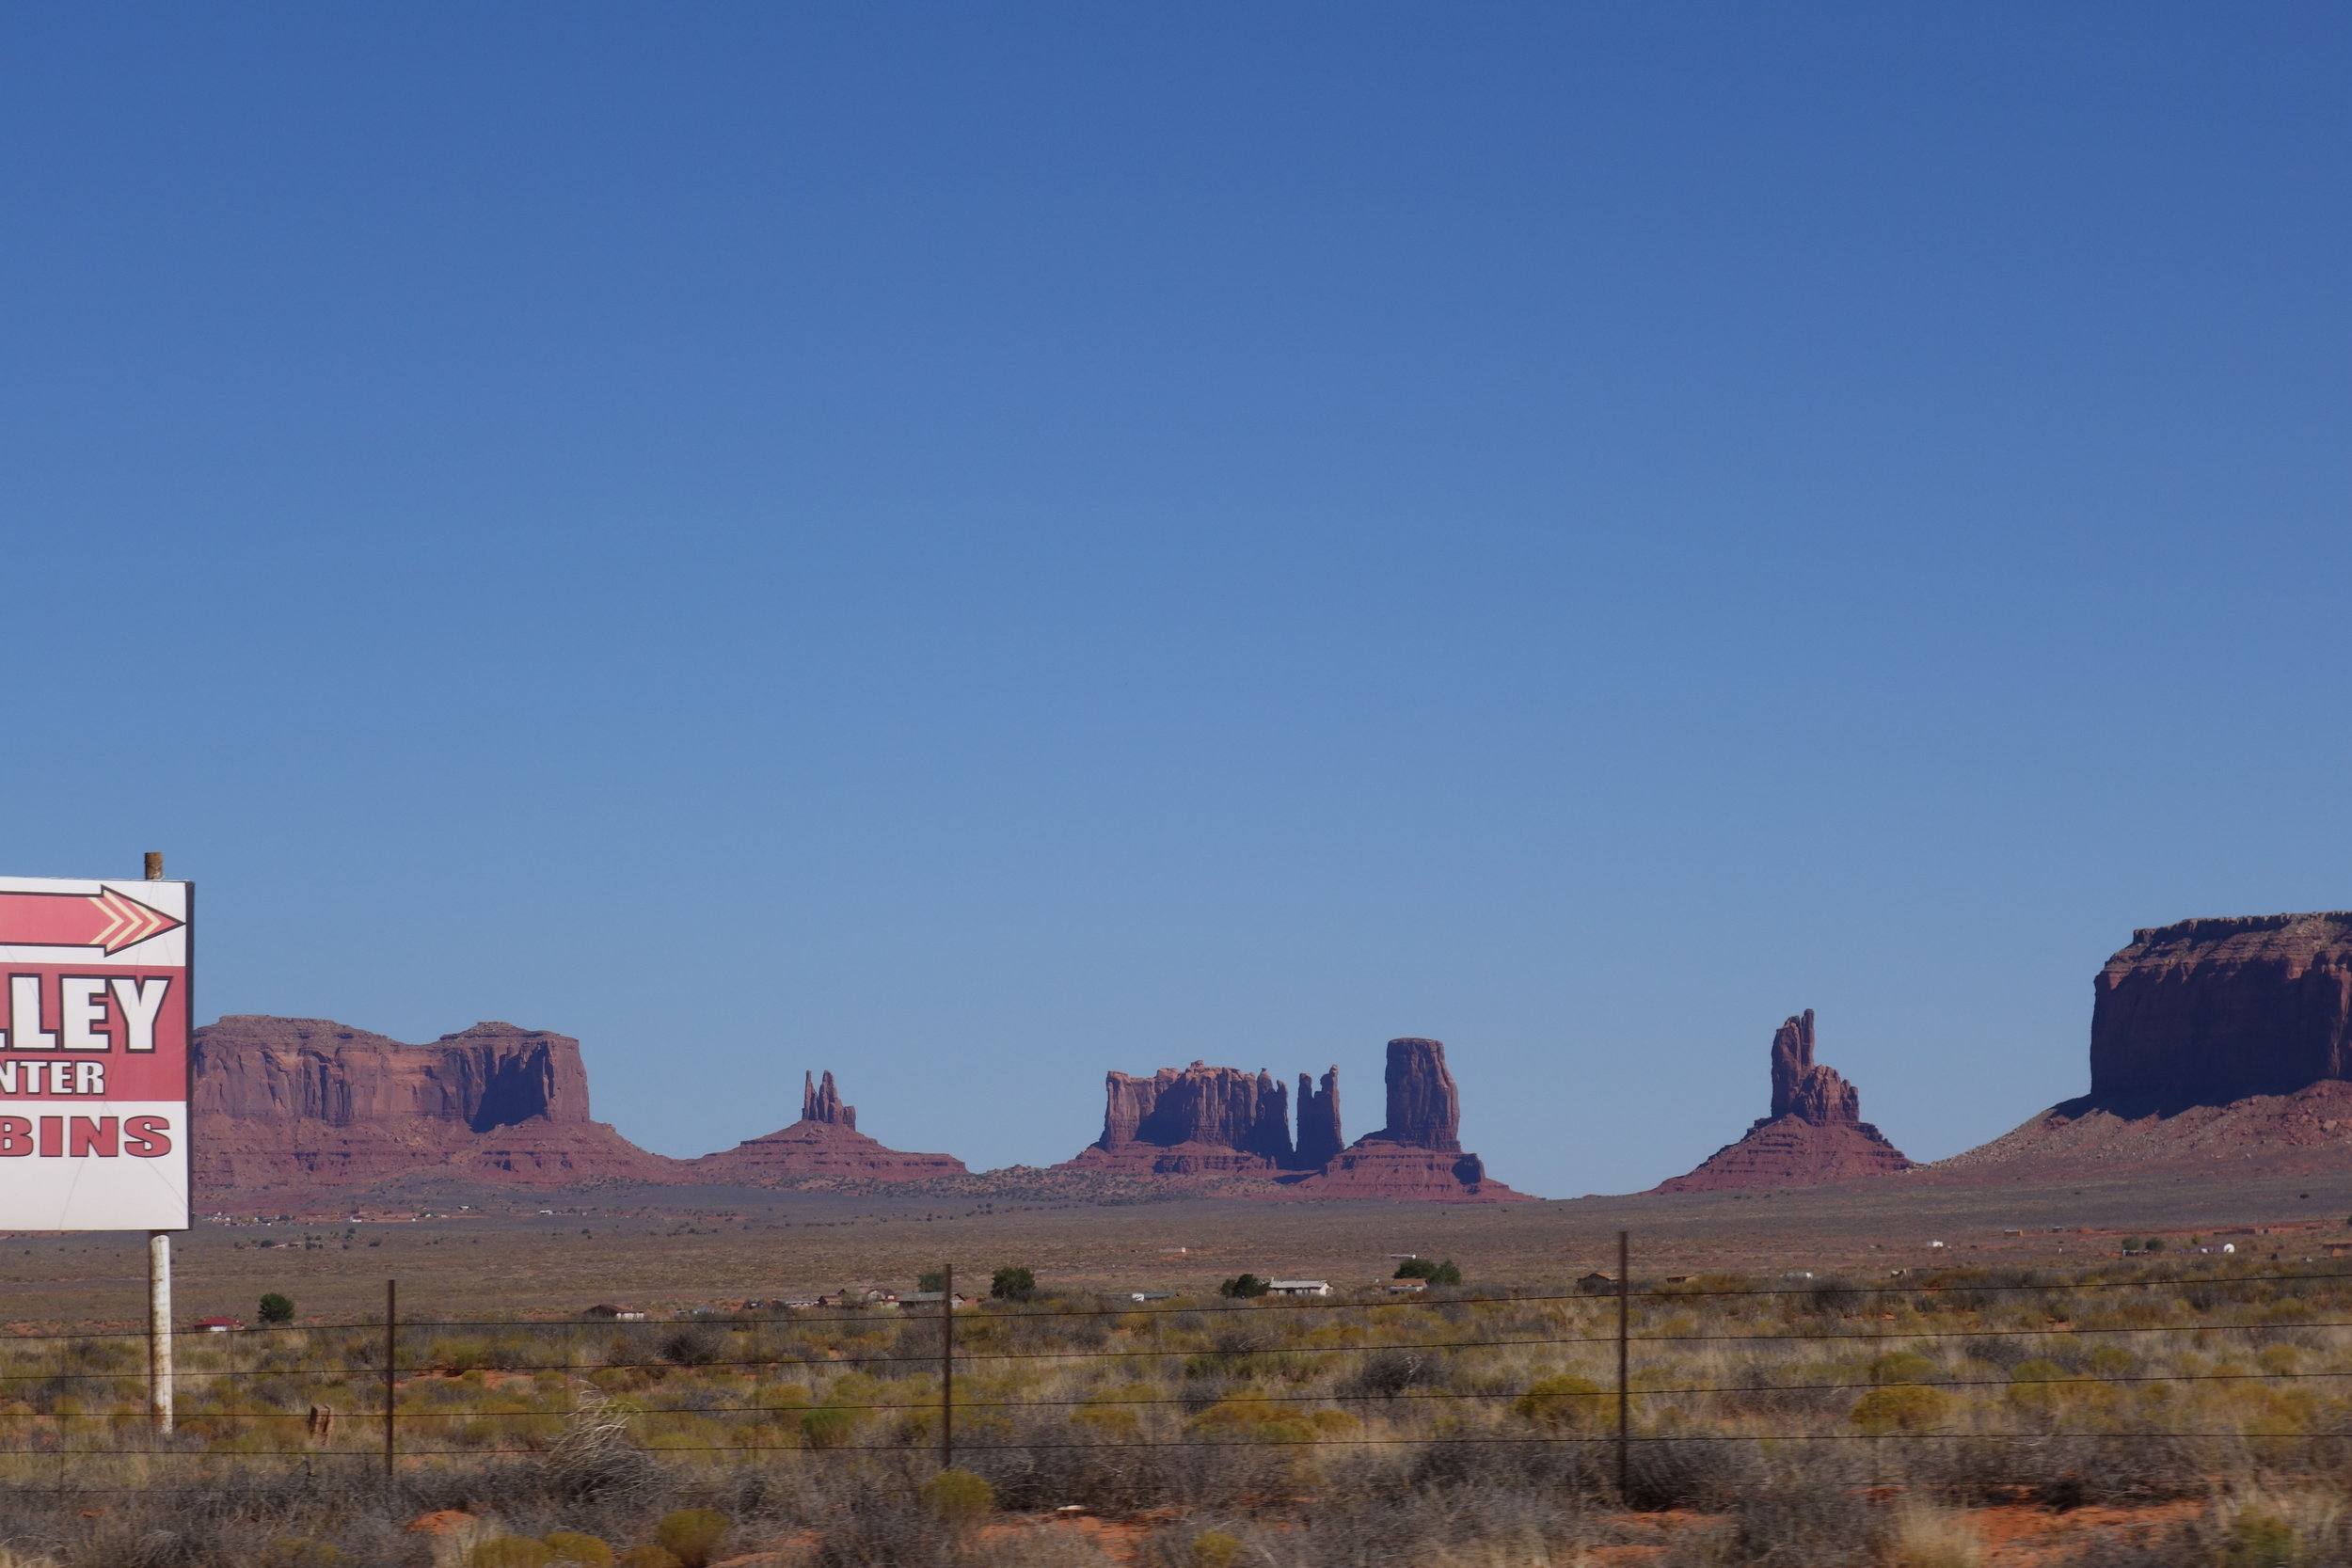 The backside of Monument Valley. I like a bit of industrial with my landscape.